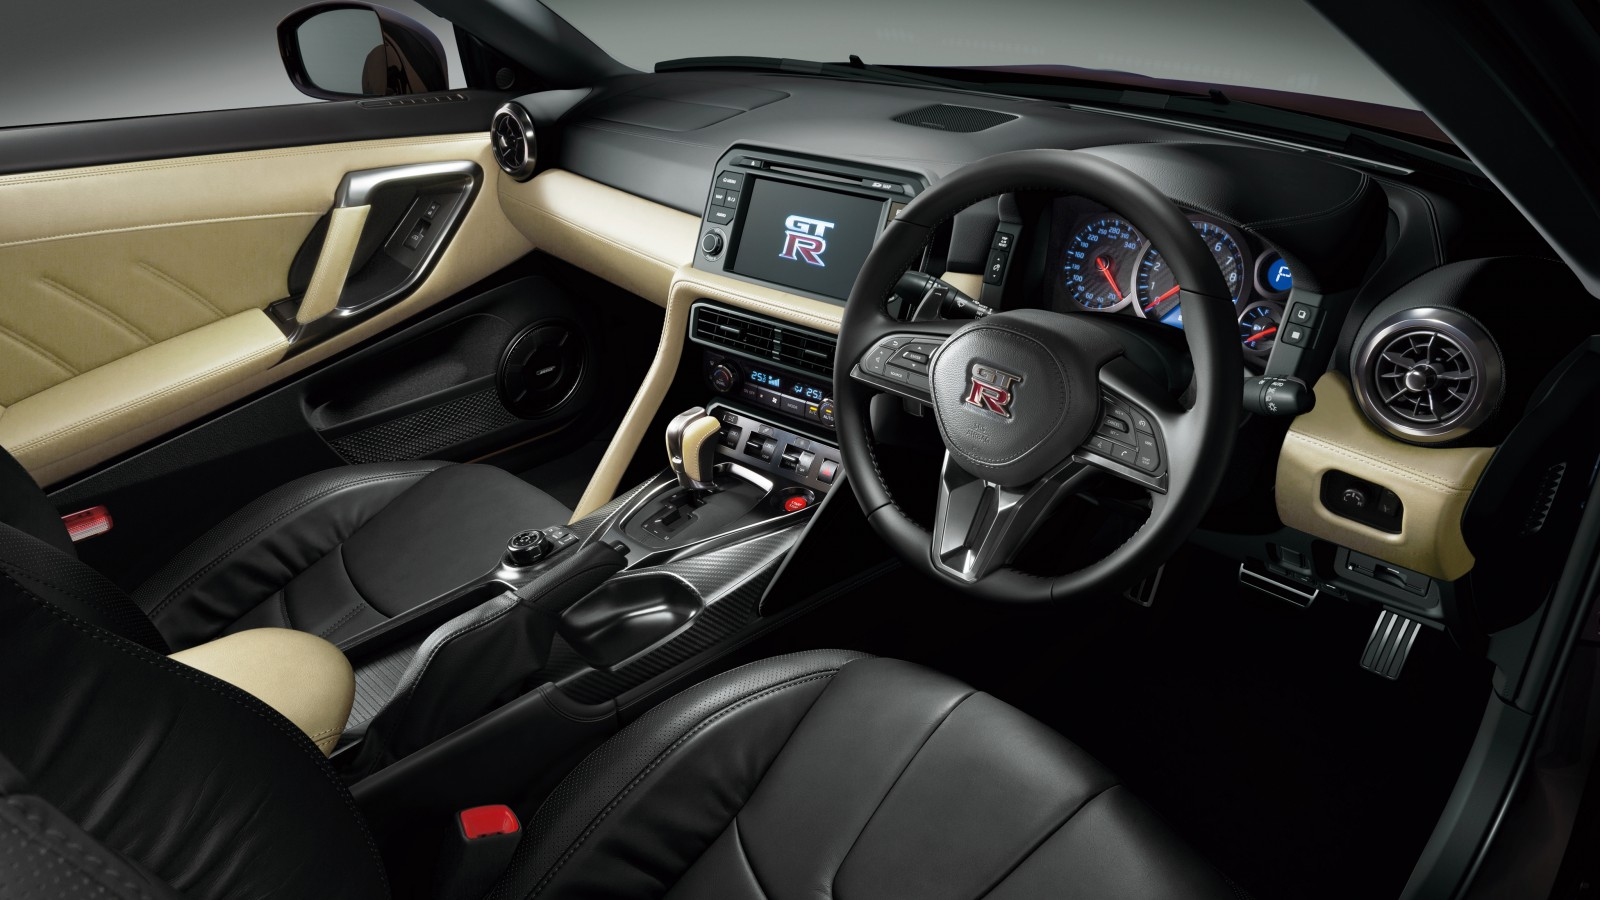 Nissan GT-R Naomi Osaka 2019 4K Interior Wallpaper | HD ...